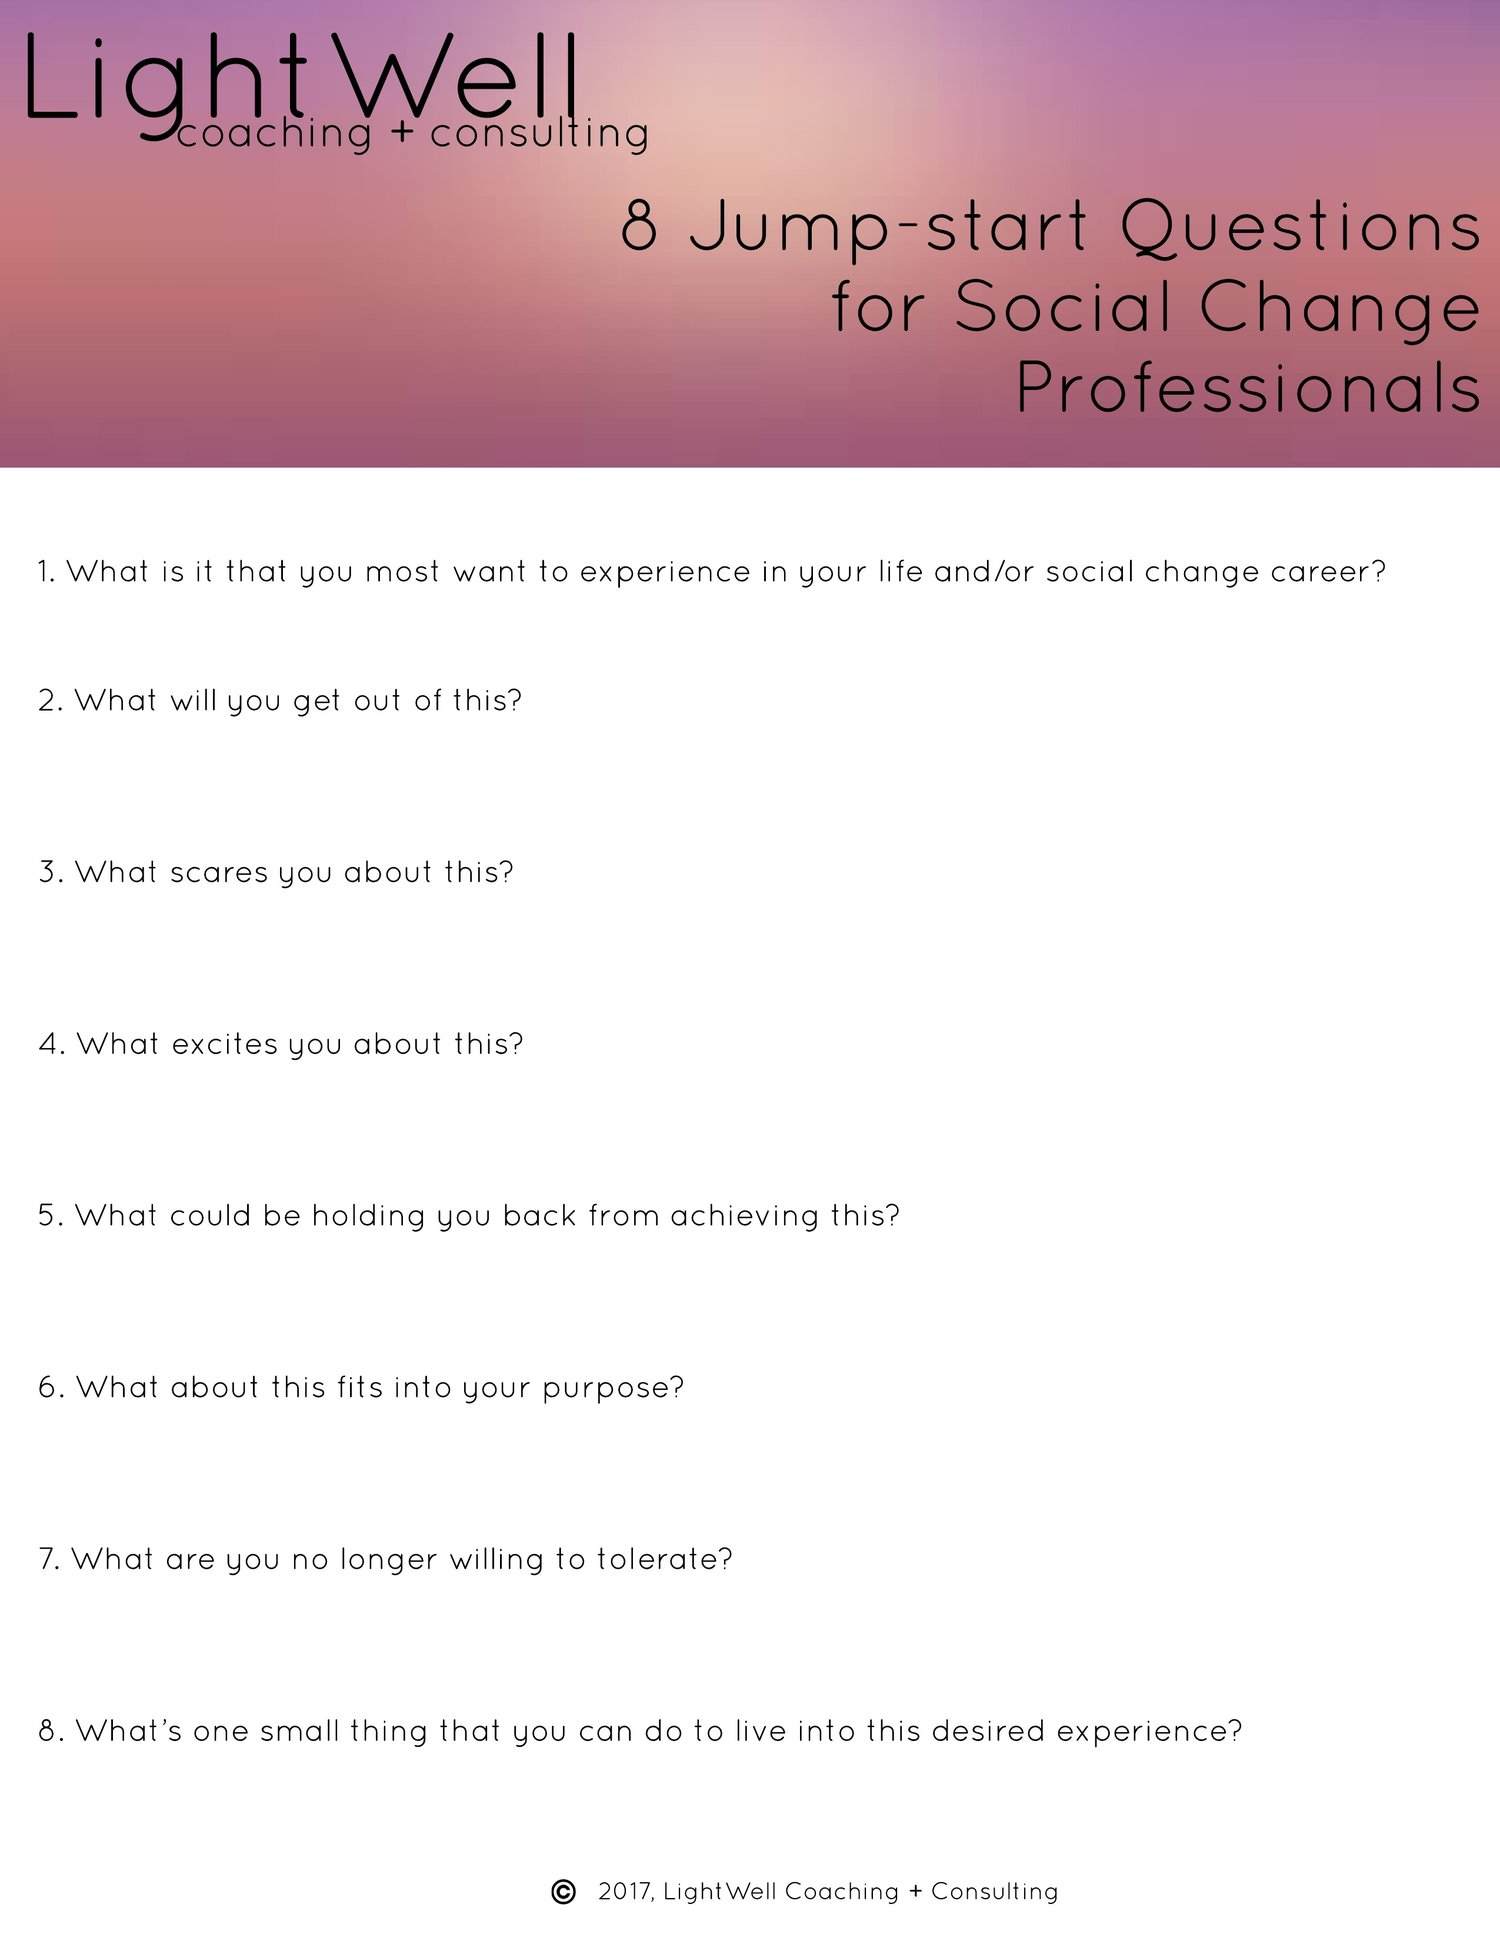 8 Jump-start Questions for Social Change Professionals — LightWell